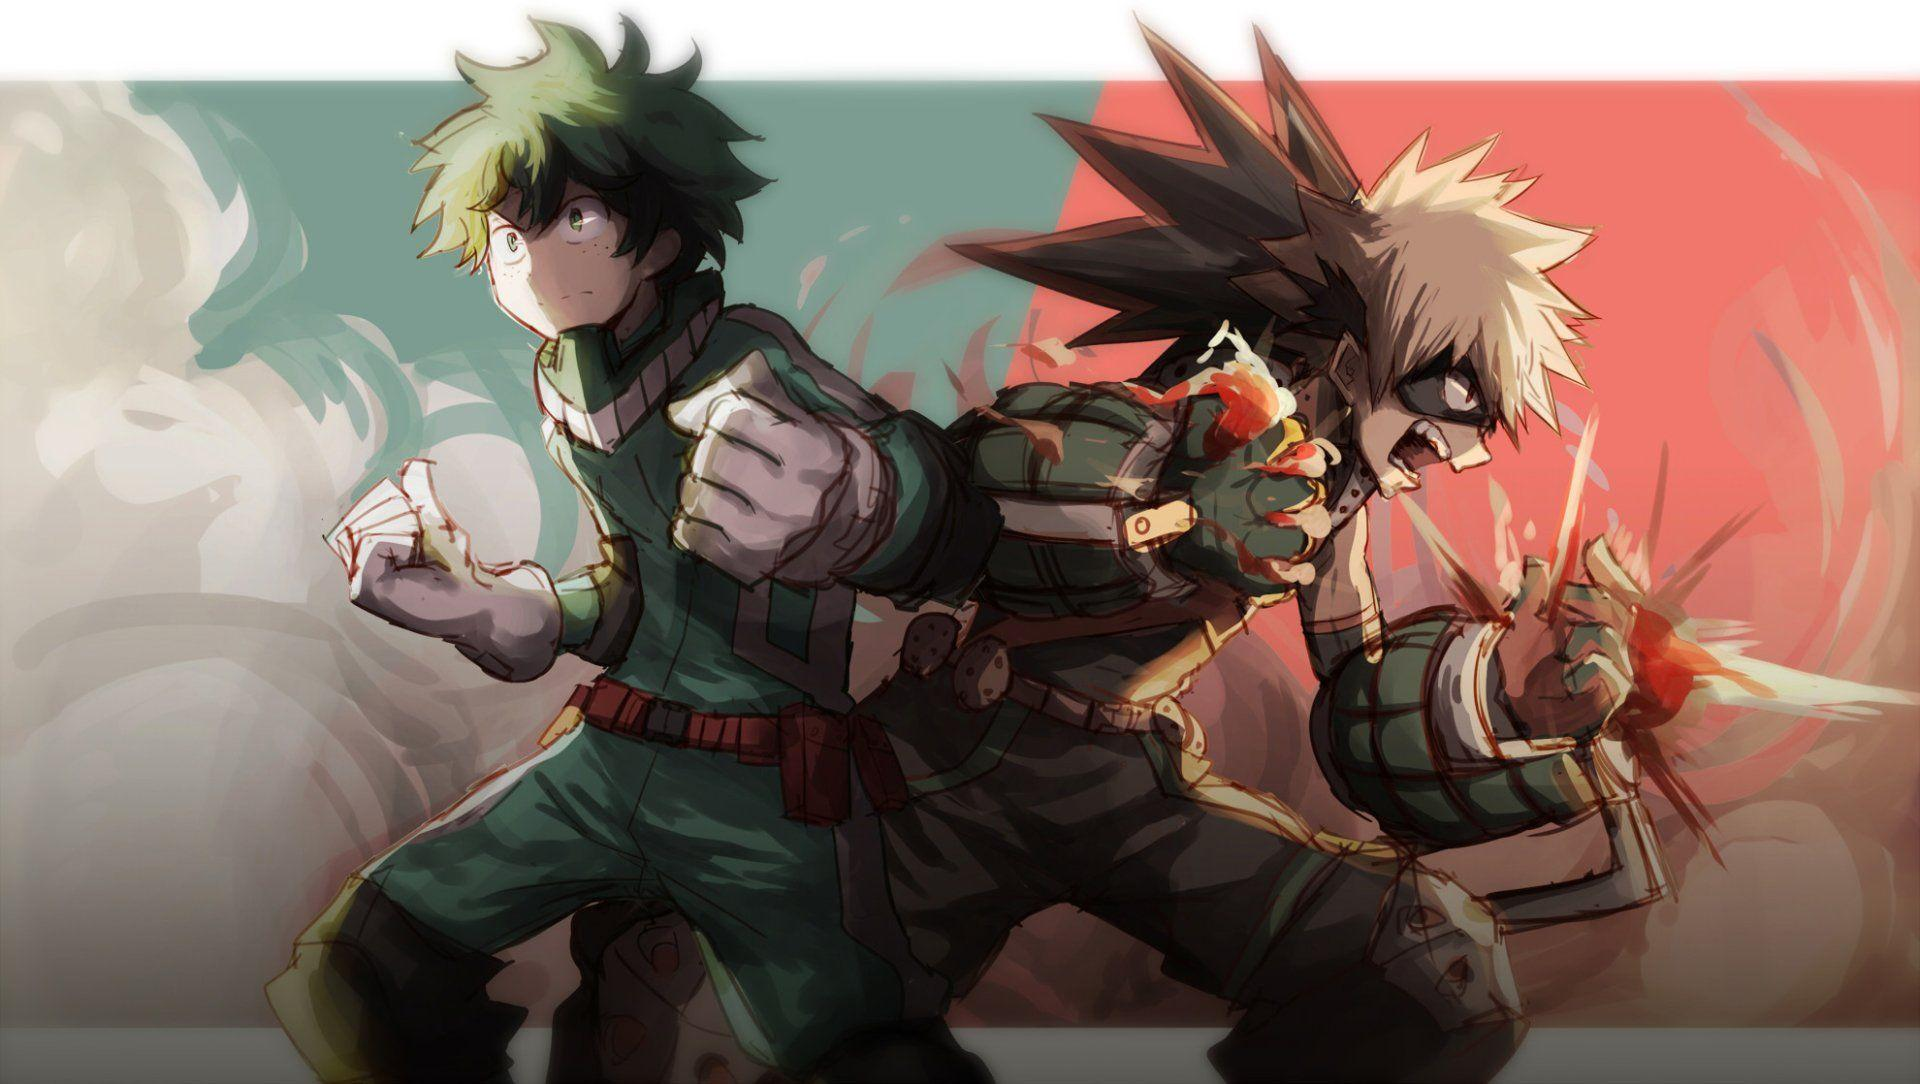 Katsuki Vs Midoriya Wallpapers Wallpaper Cave